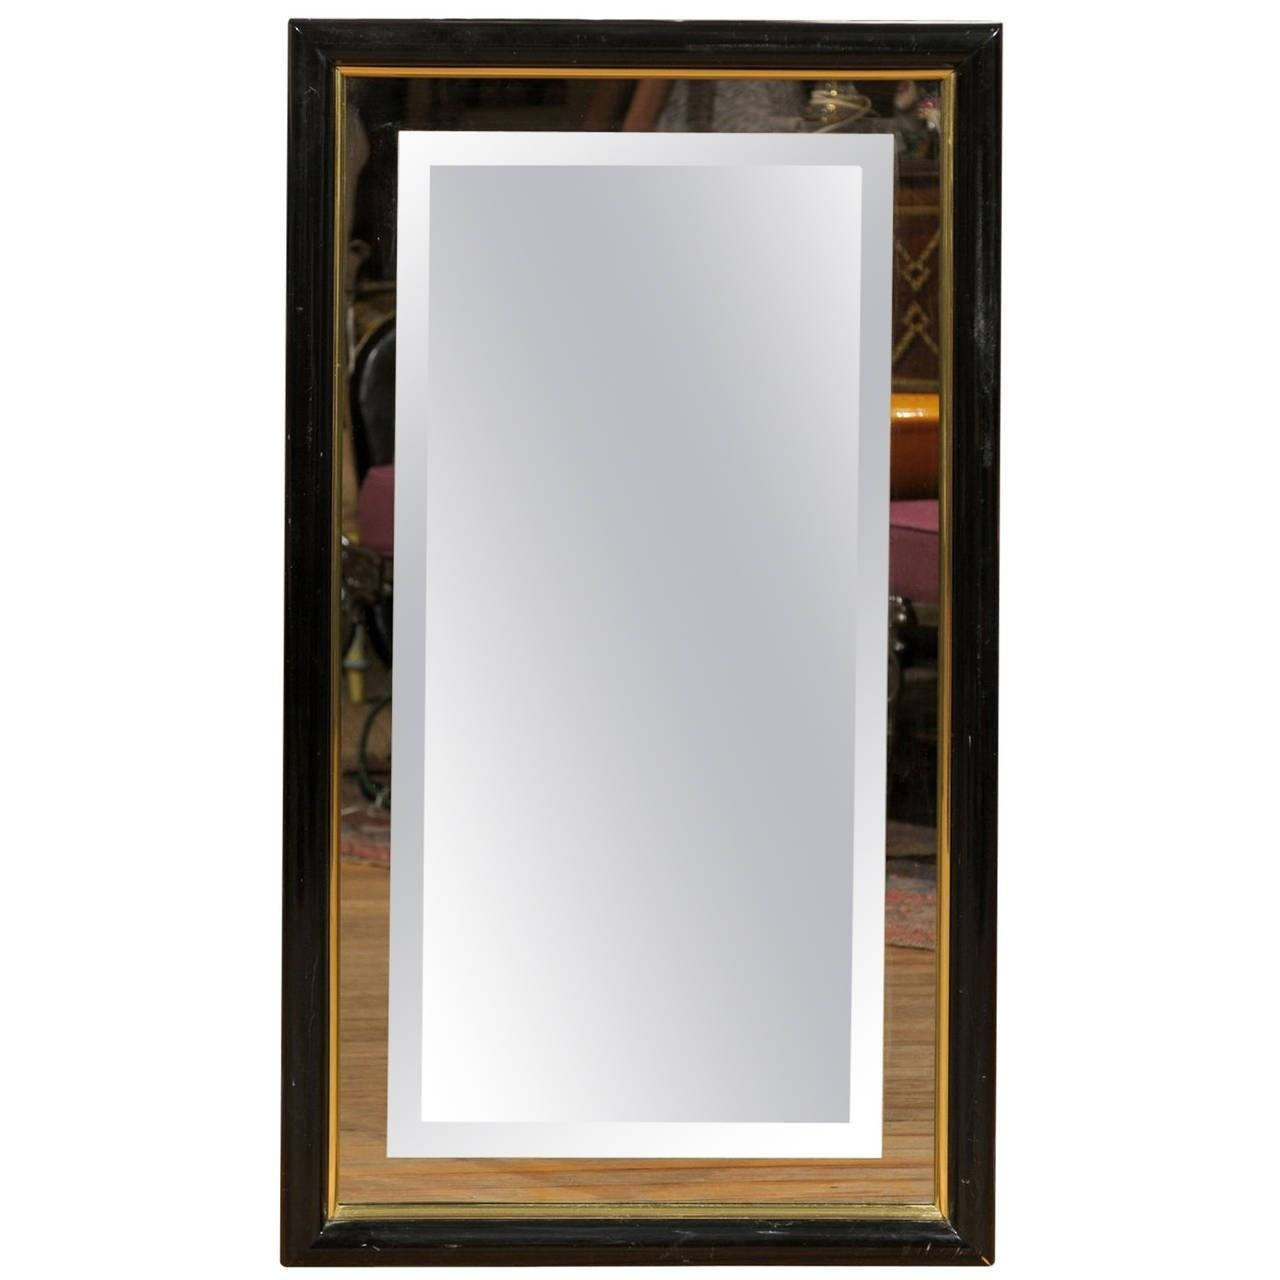 Smoked And Beveled Glass Wall Mirror In A Black And Brass Frame for Brass Mirrors (Image 15 of 15)